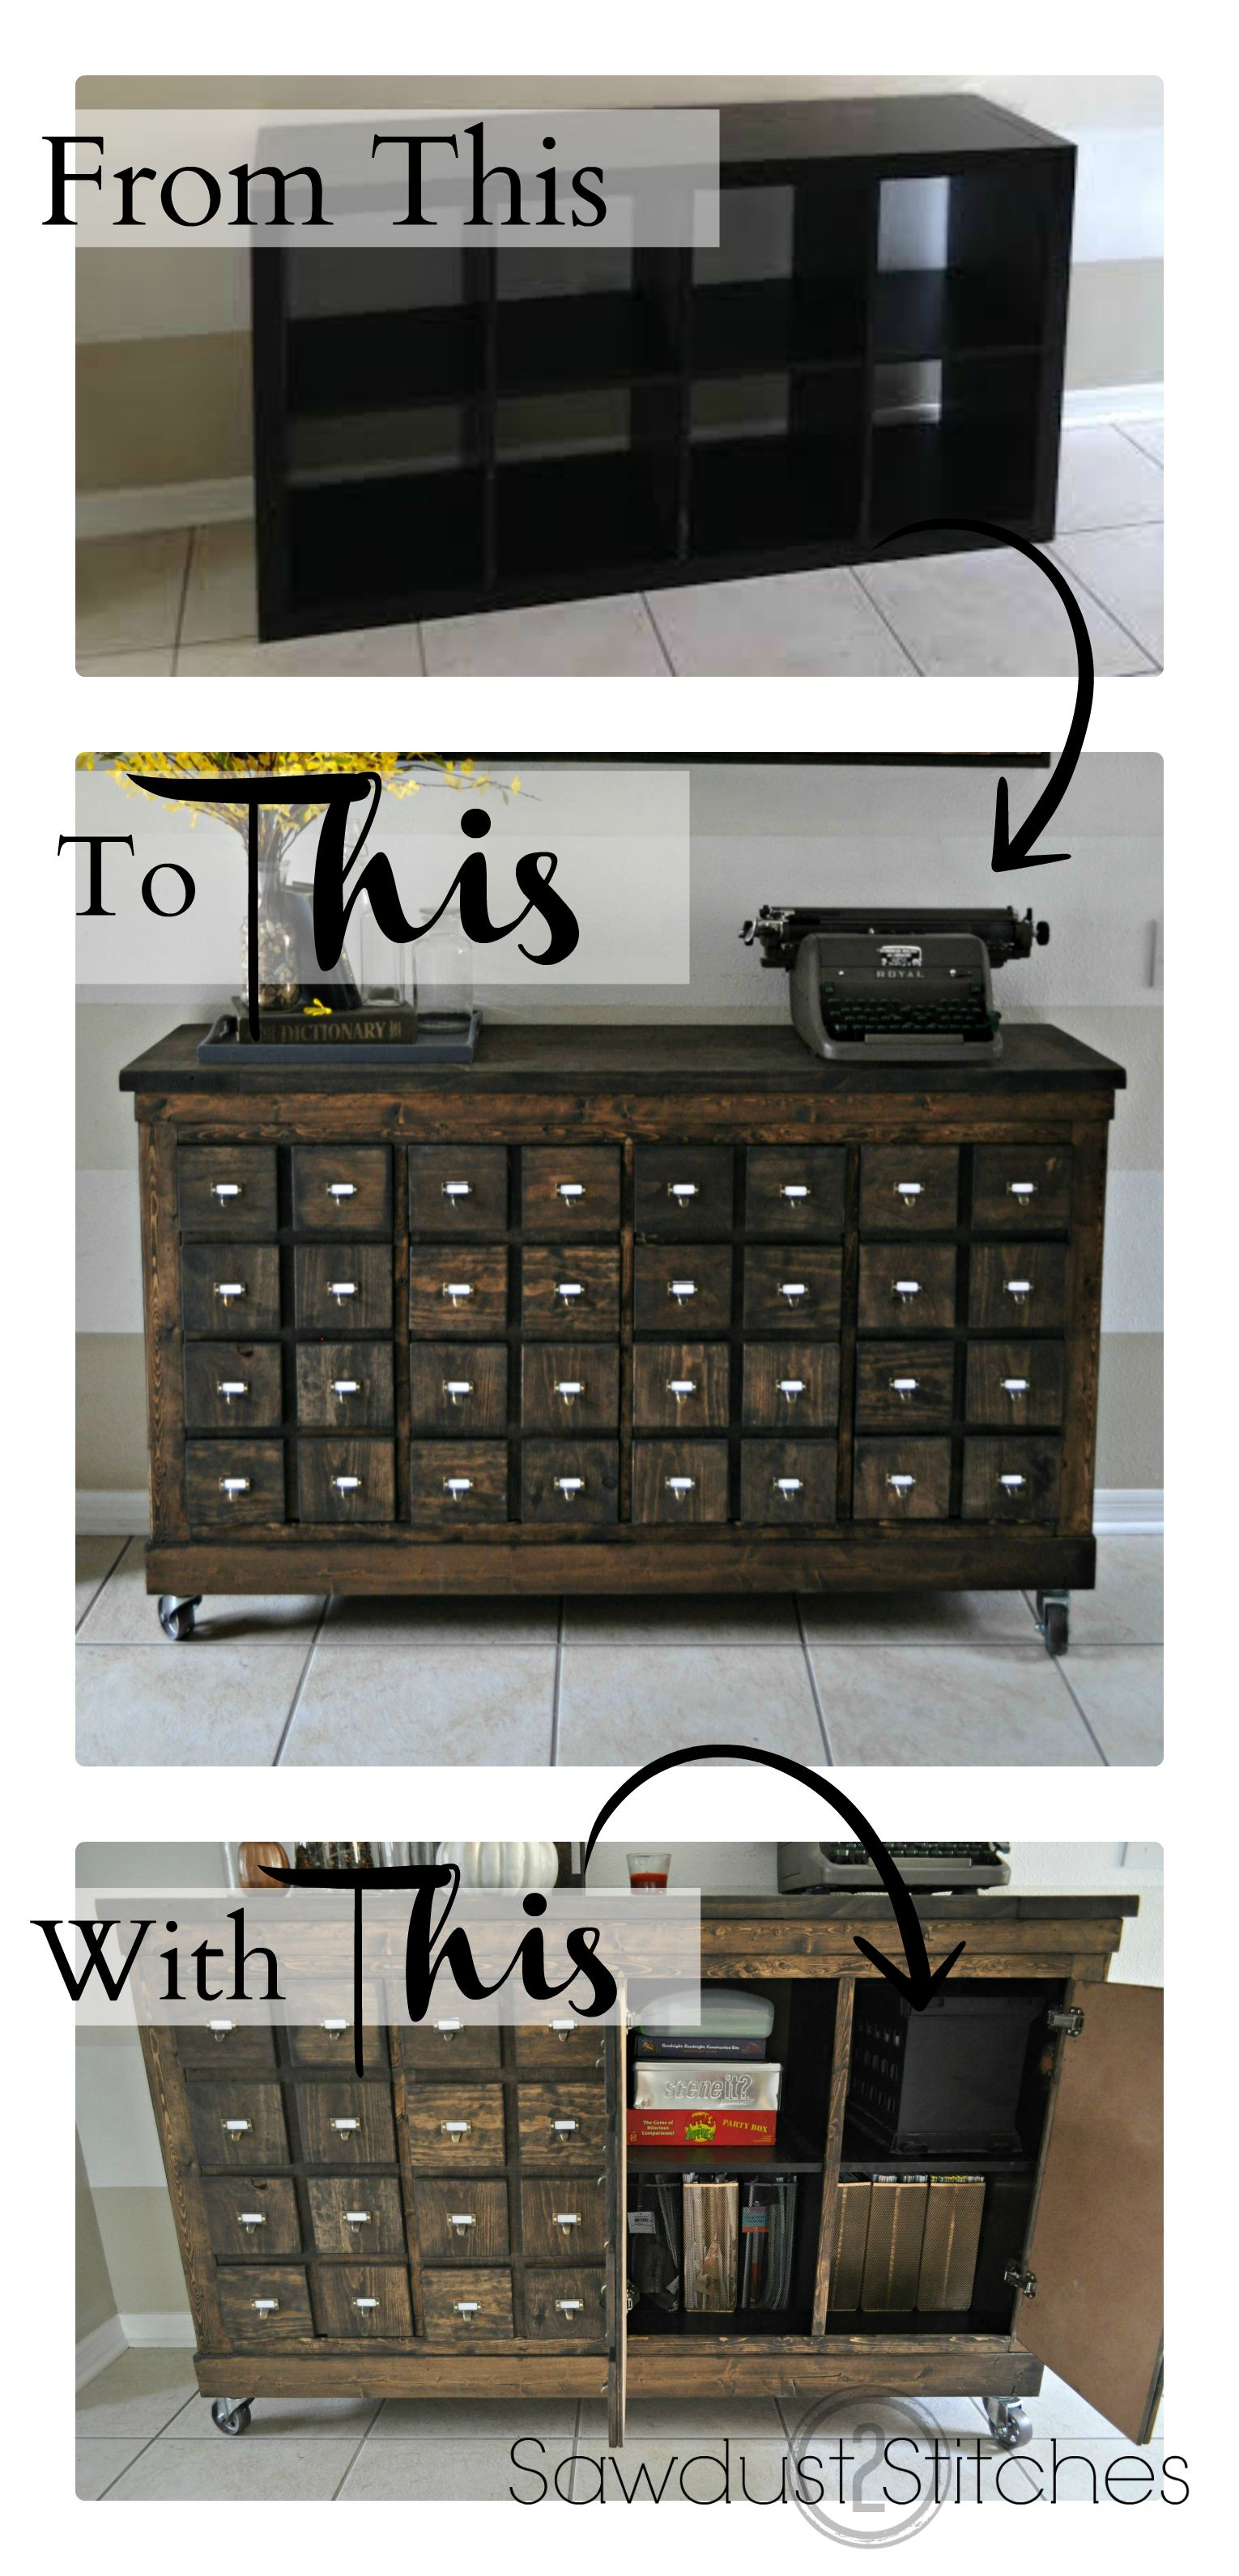 Regalschrank Selber Bauen 18 Amazing Diy Makeovers You Have To See